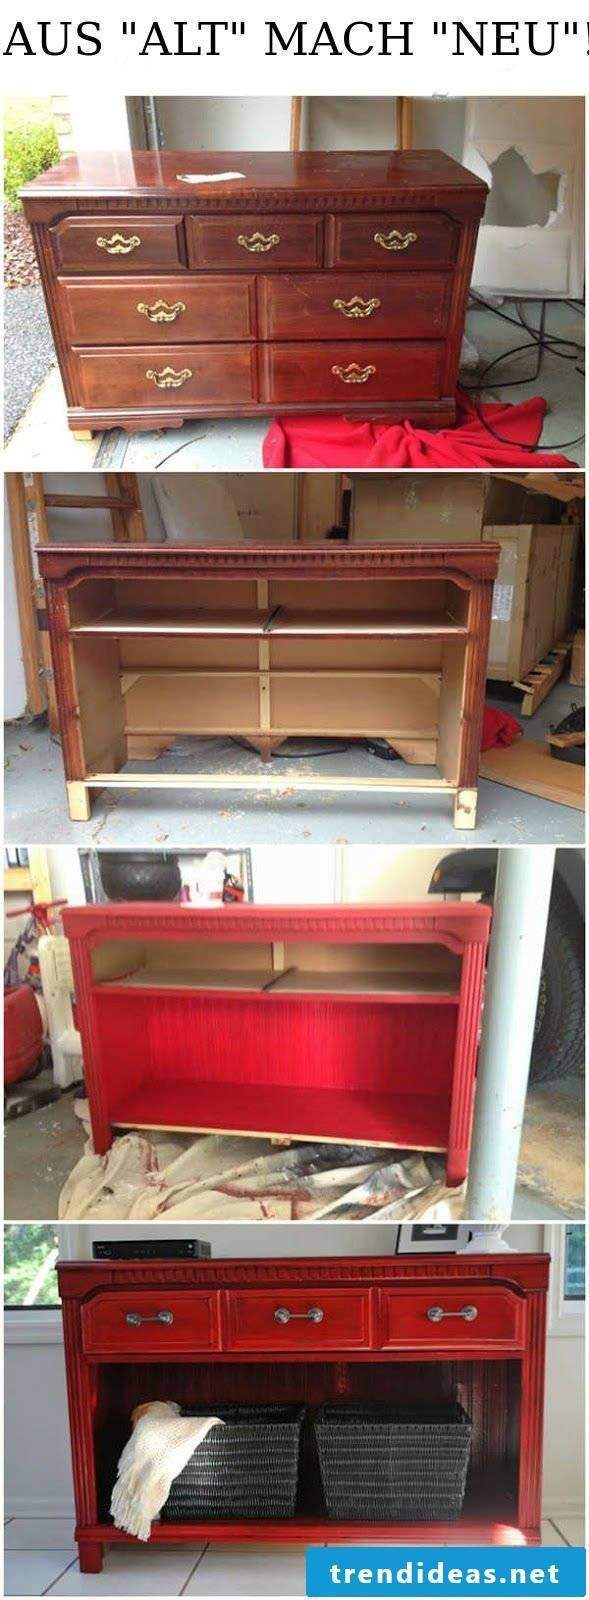 Do it Yourself Hacks: Turn old into new!